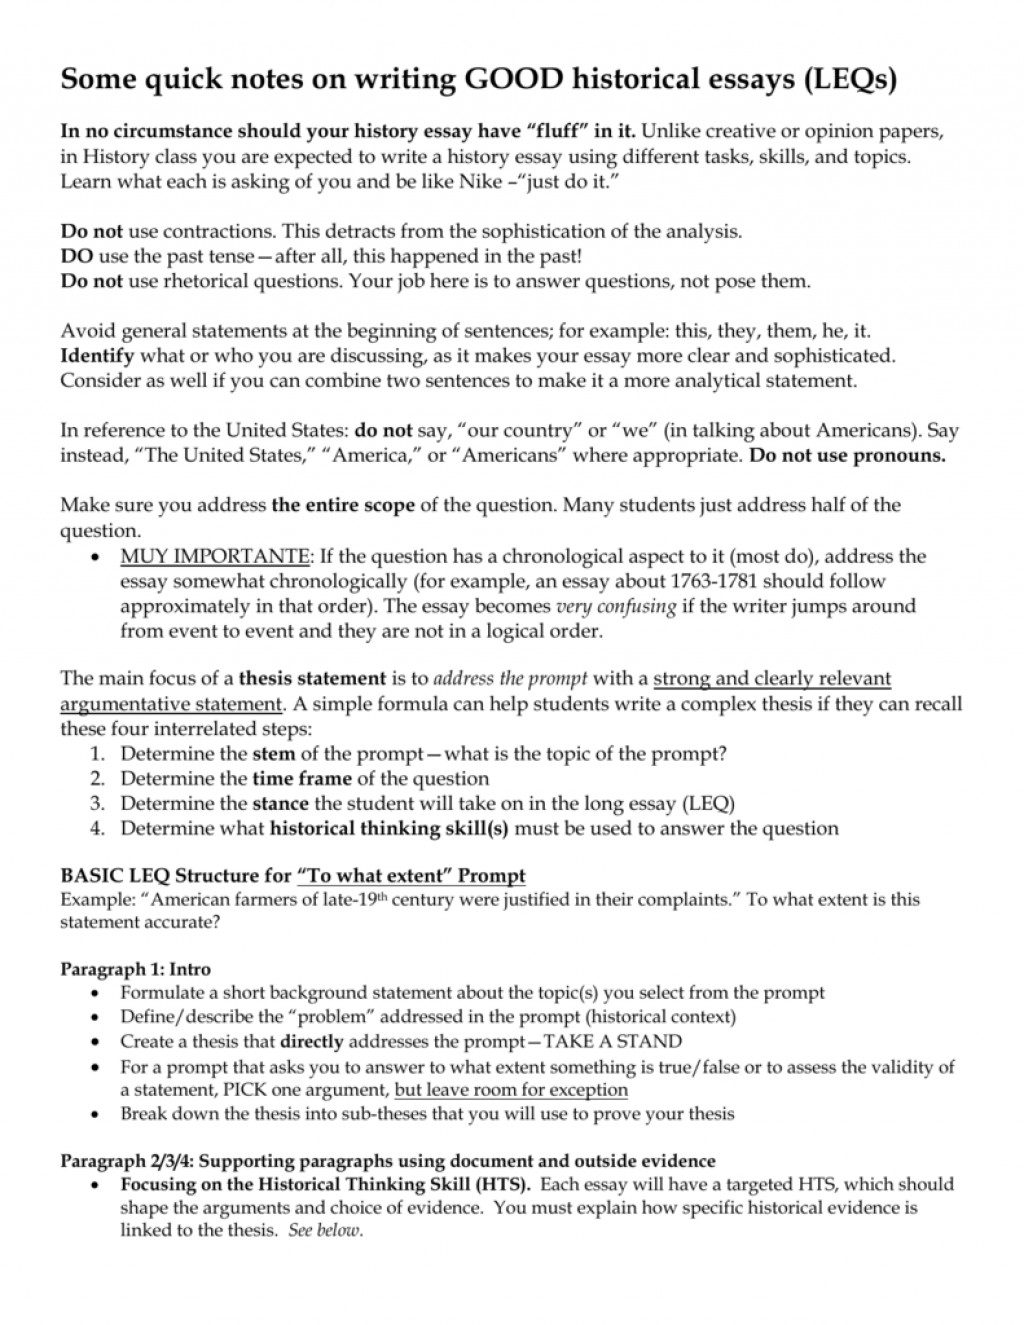 004 Essay Example 007295166 1 How To Write Stupendous A History Outline Good Introduction Paragraph For Extended Large